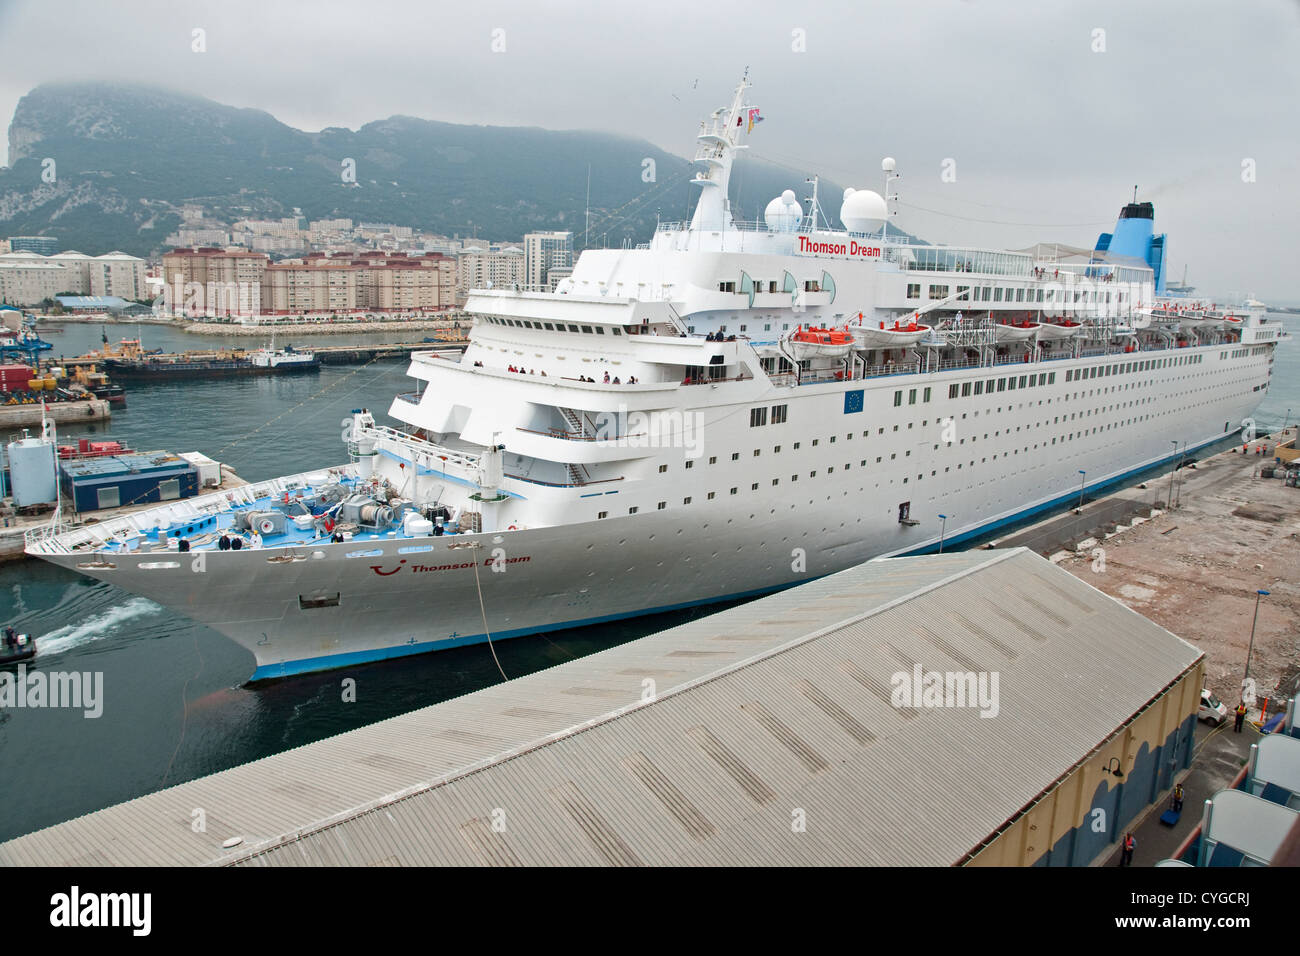 Cruise Ship Thomson Dream Alongside The Cruise Terminal At A - Pictures of thomson dream cruise ship